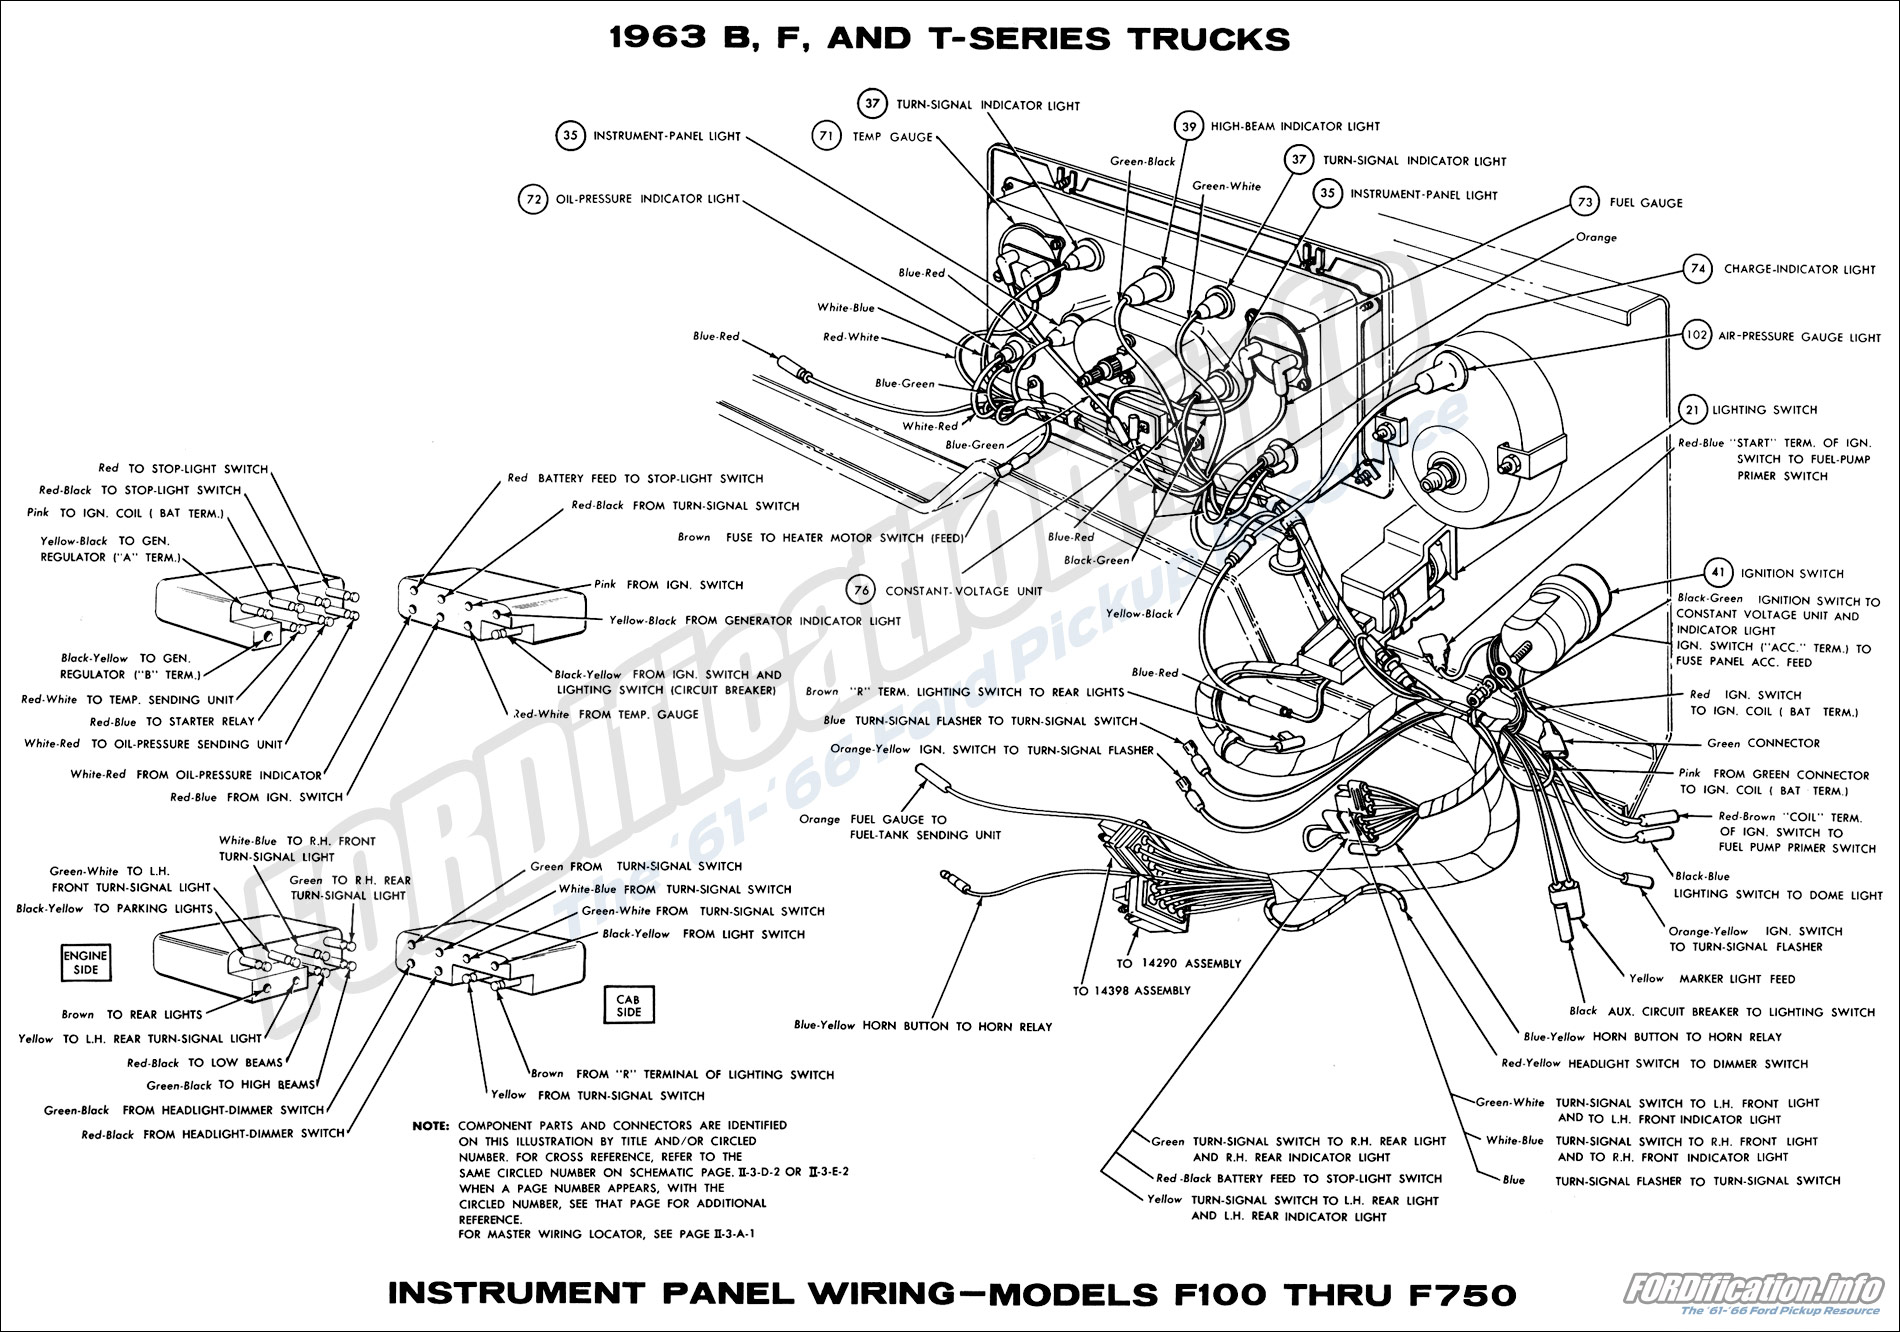 1963 F100 Wiring Diagram : 24 Wiring Diagram Images